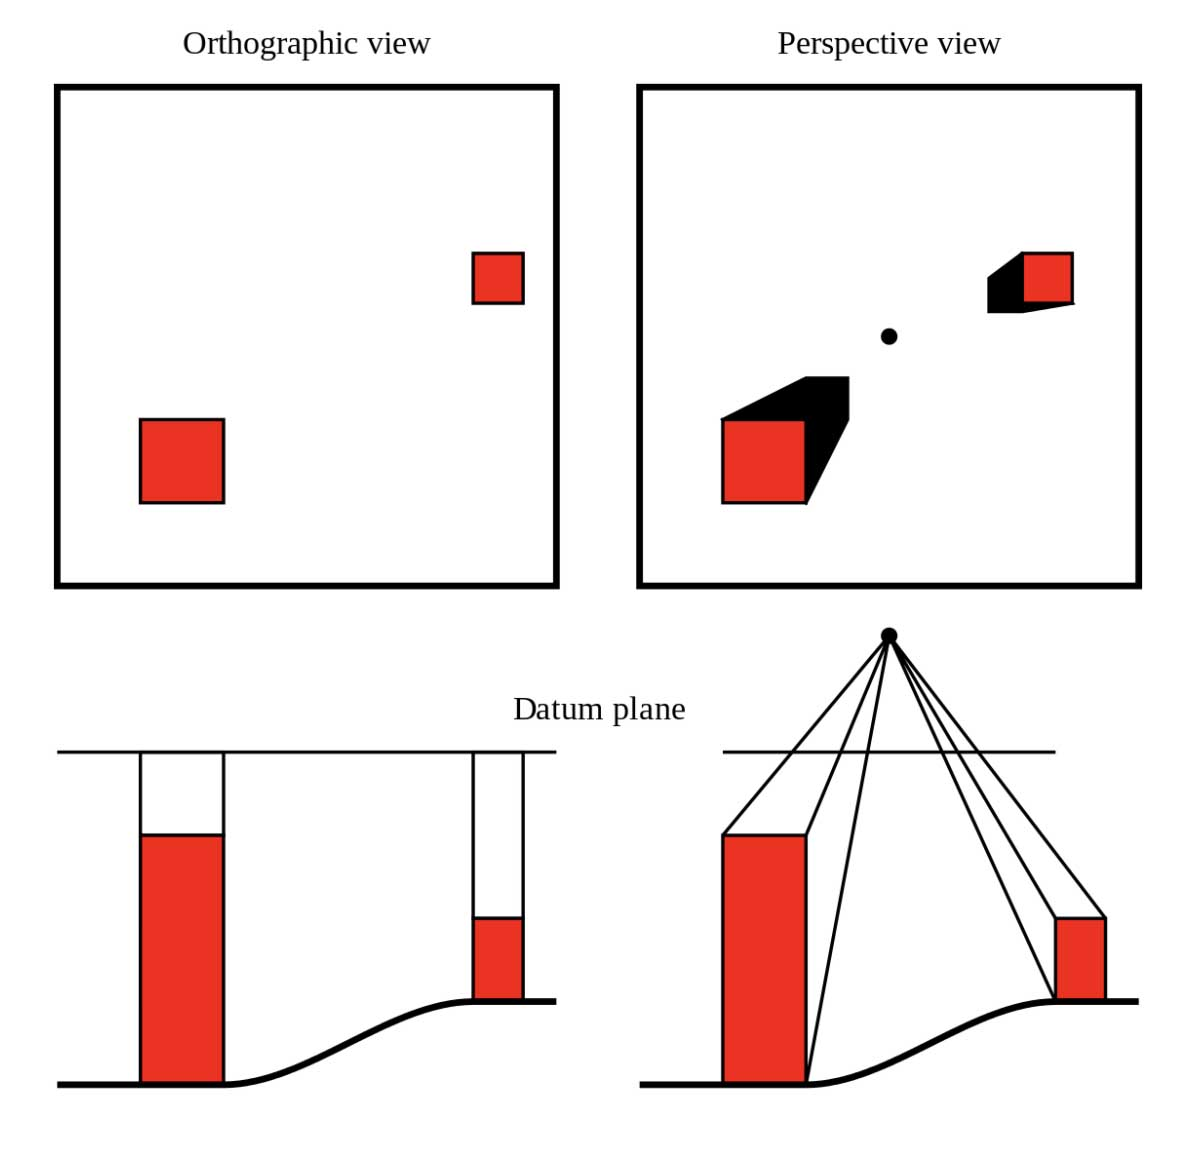 Orthographic vs Perspective View